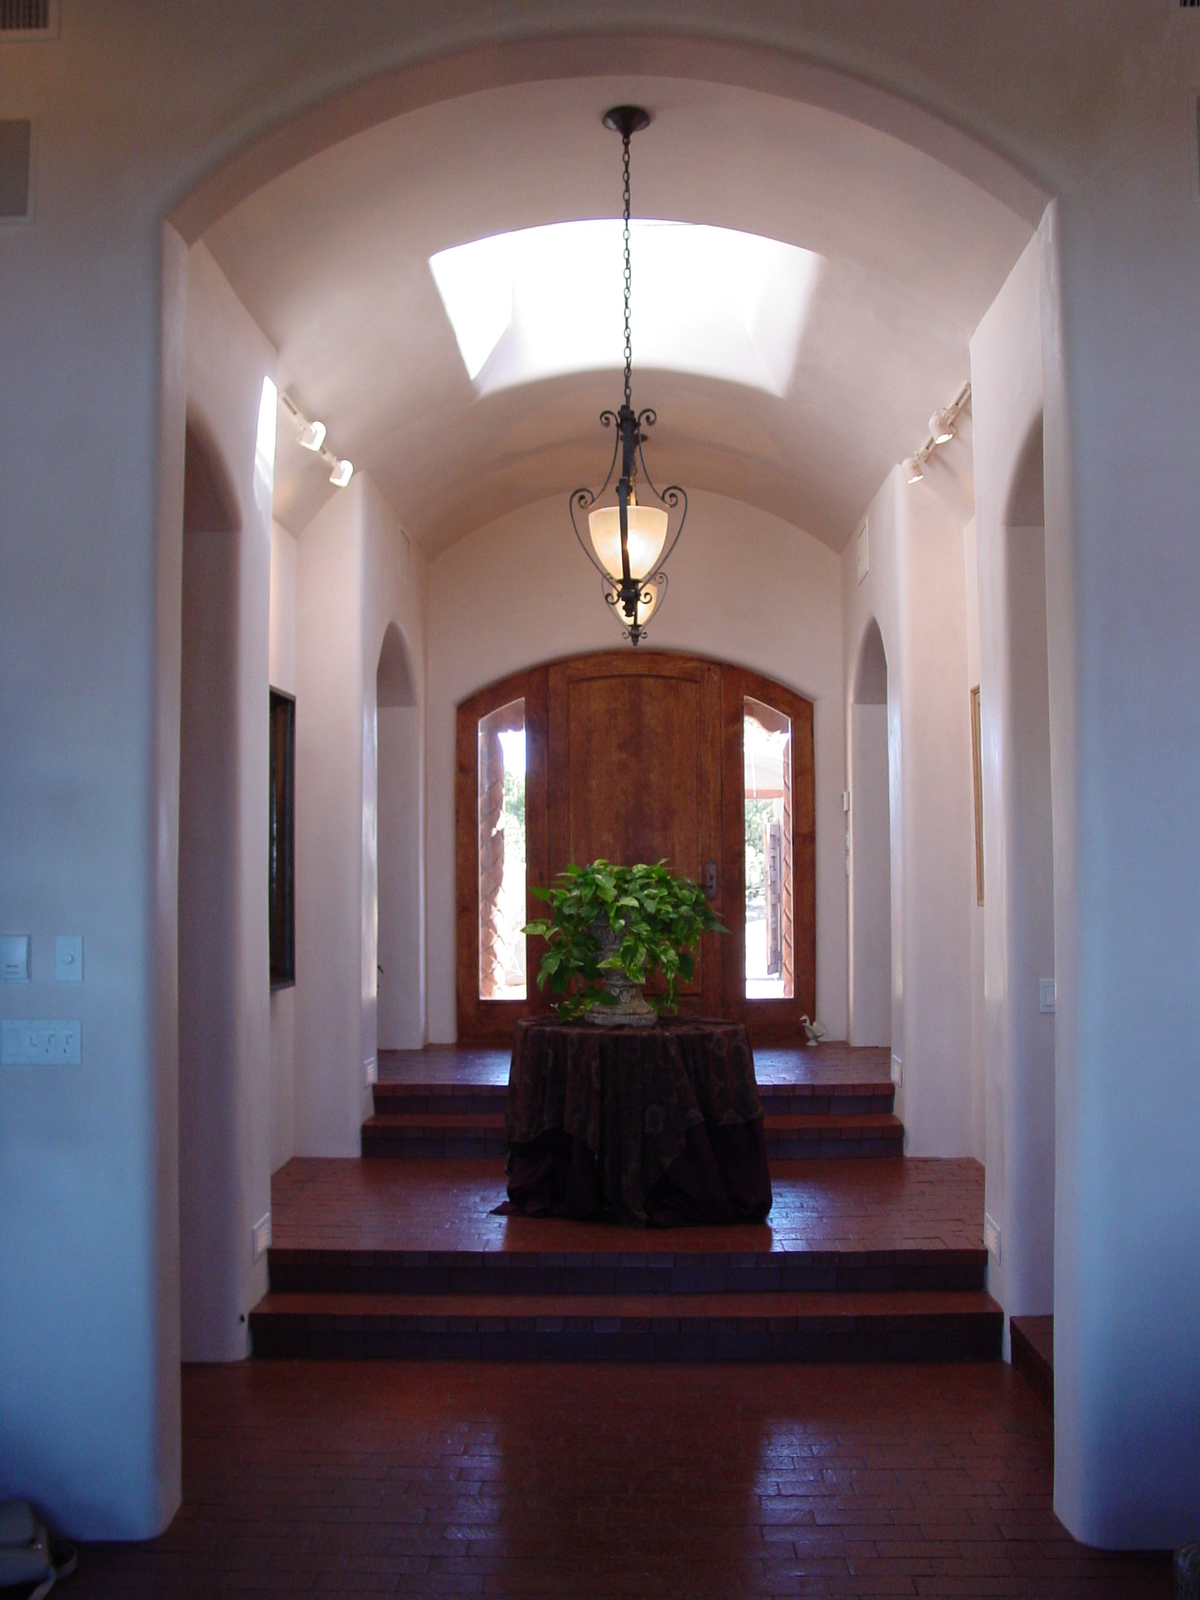 Vaulted entry gallery